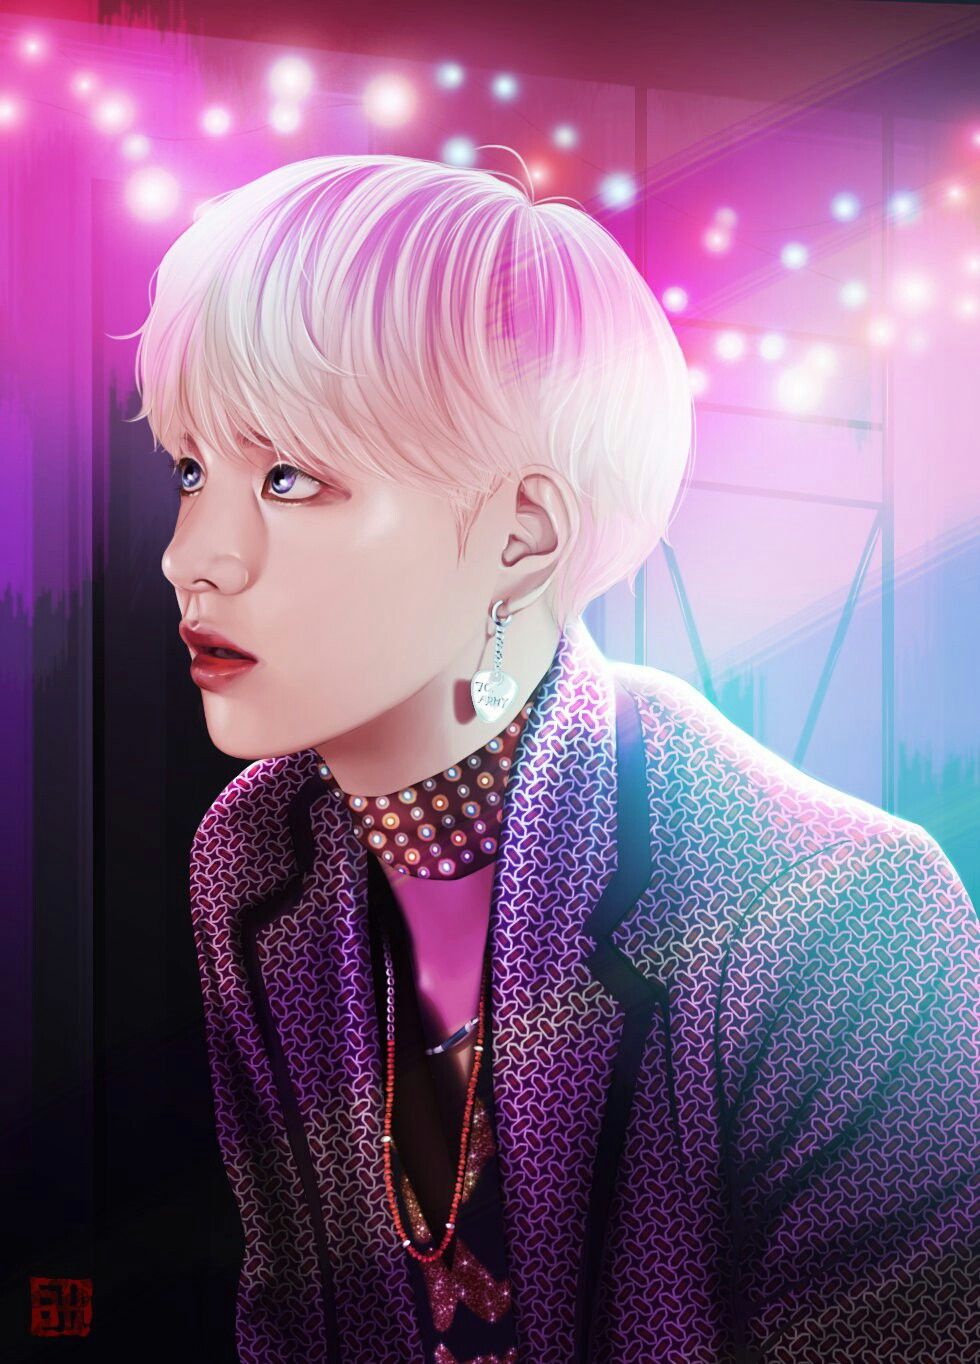 Pin by yunha on 그림 Pinterest BTS, Fanart and Kpop